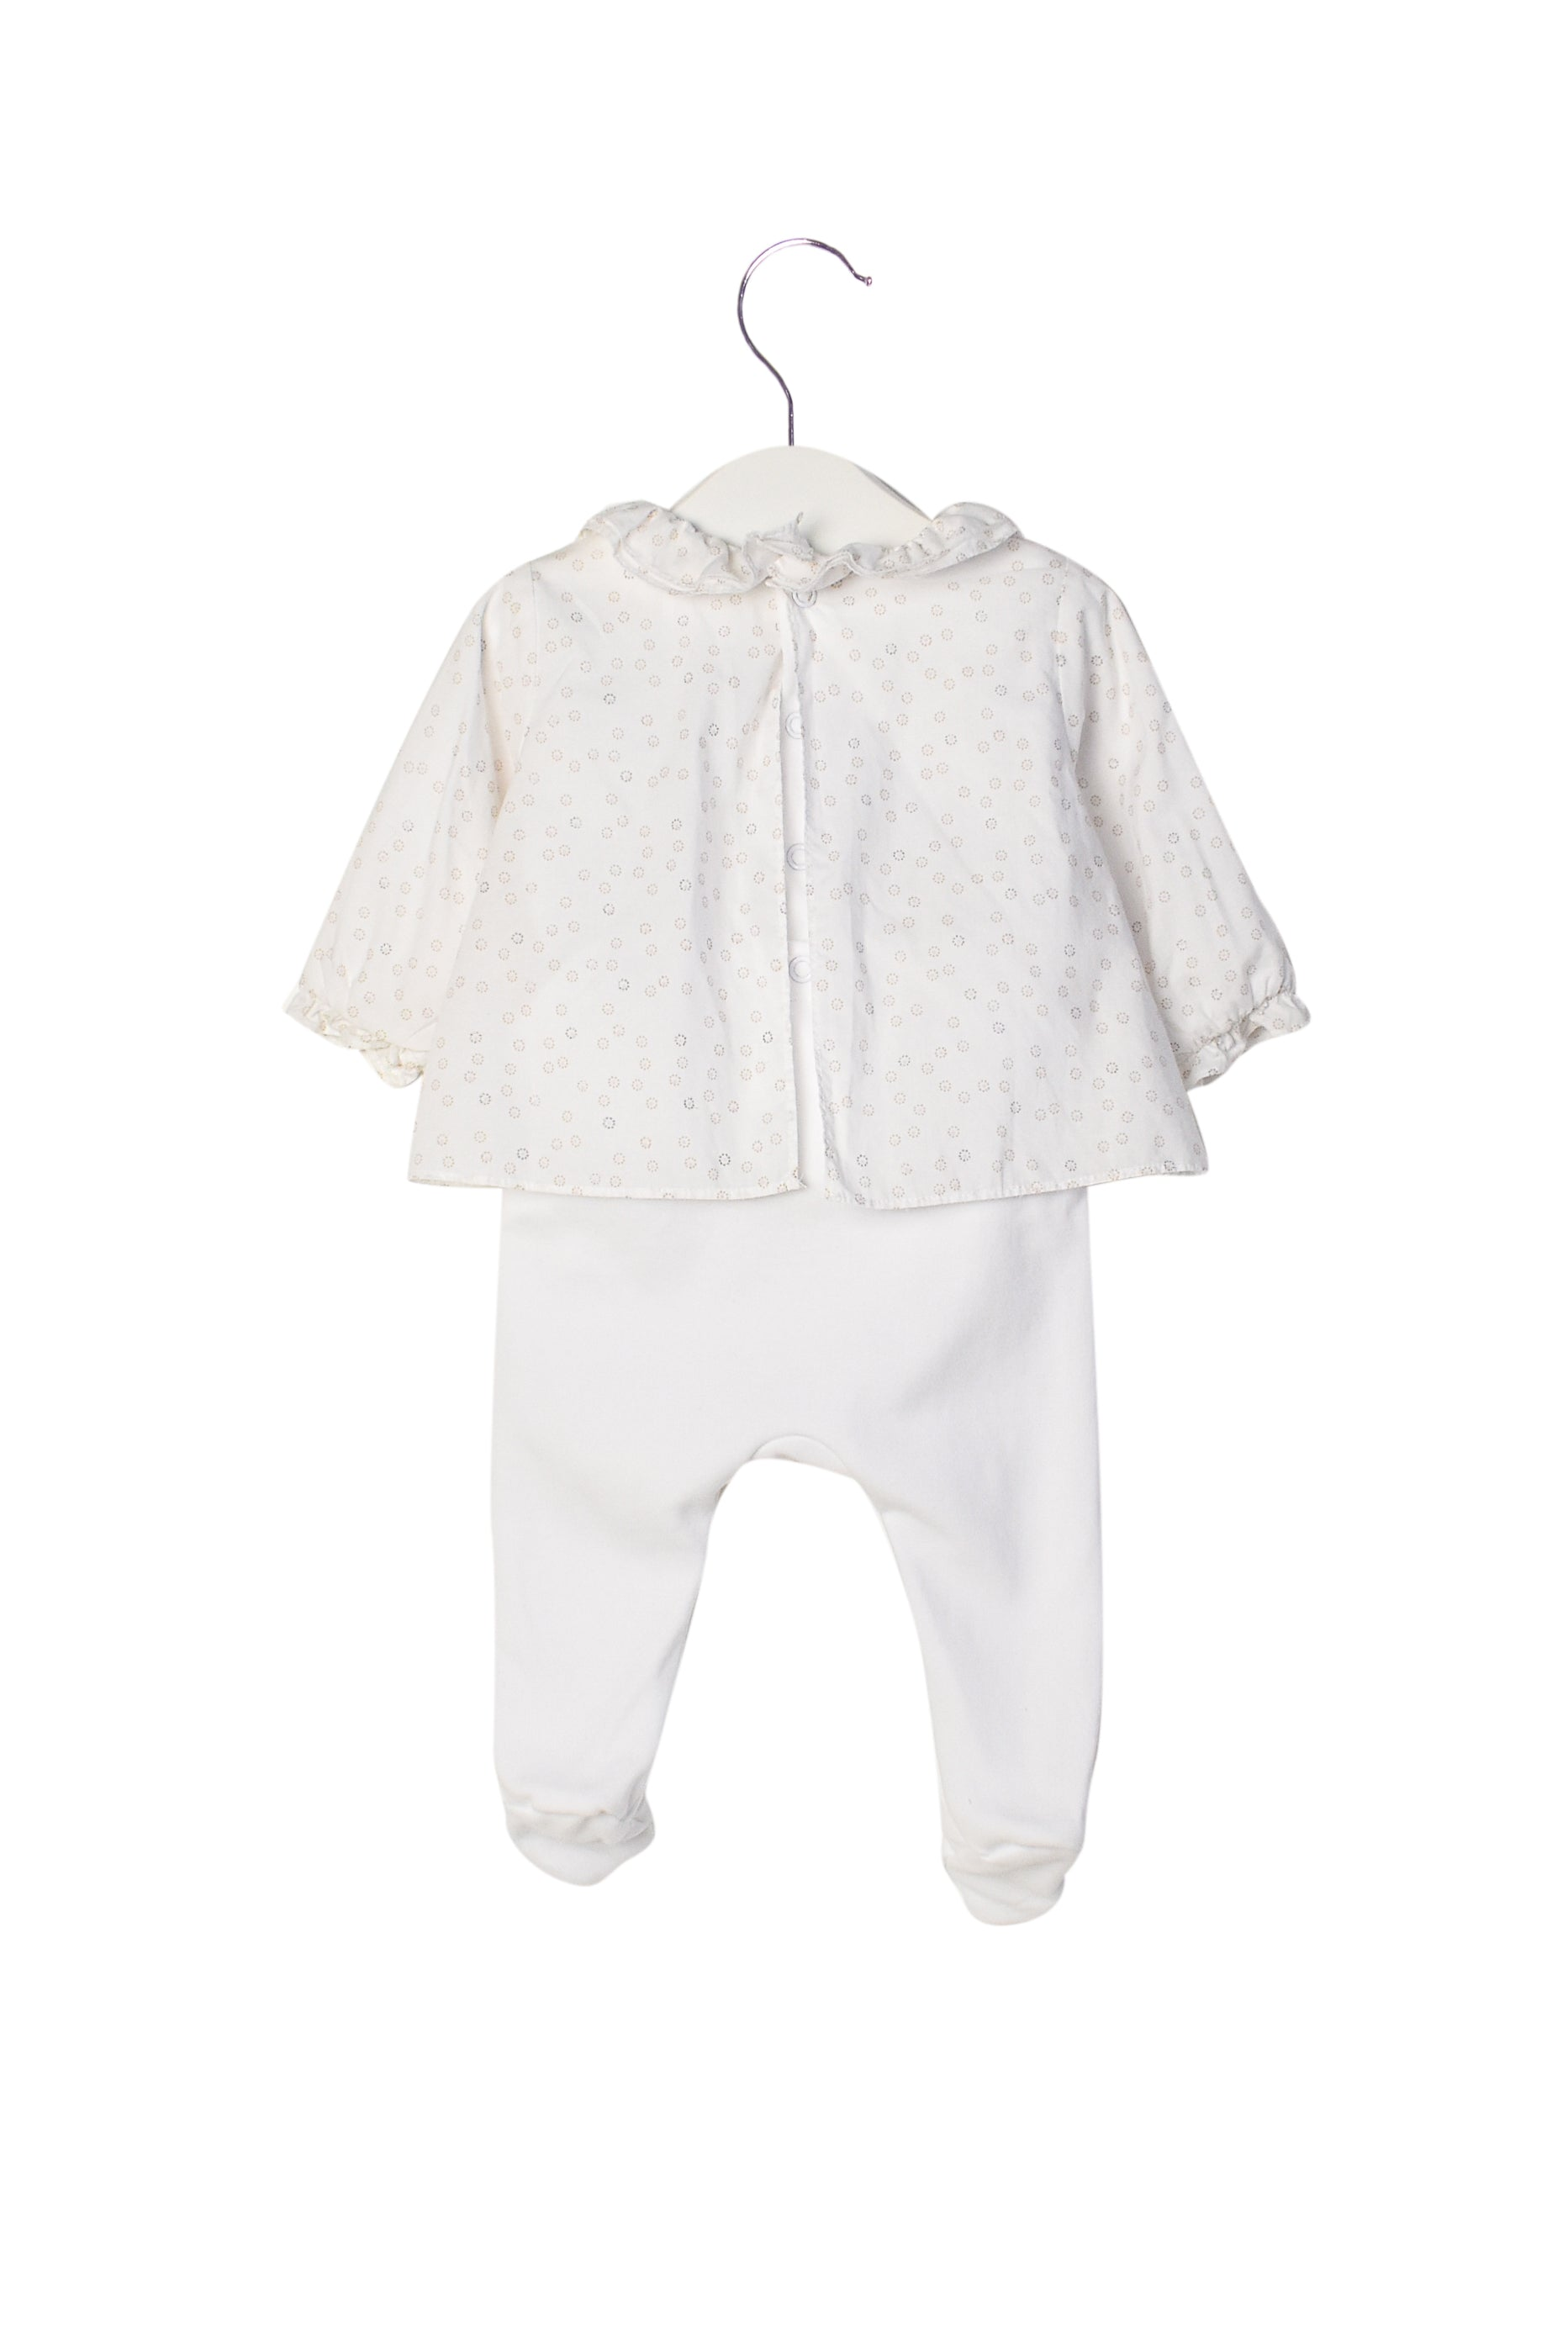 10007533 Jacadi Baby~ Jumpsuit 3M at Retykle